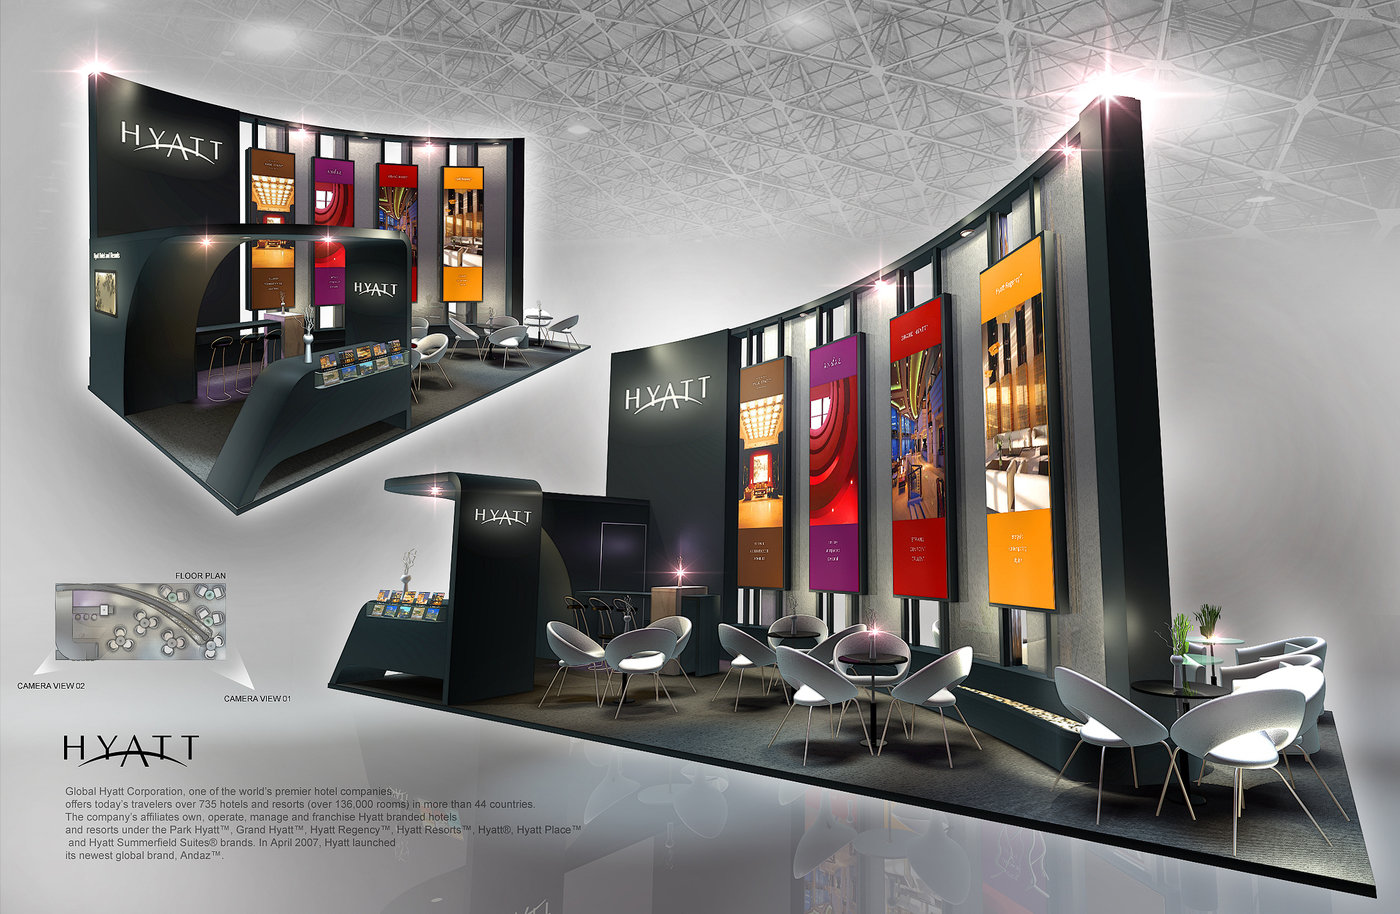 D Exhibition Designer Jobs In Singapore : Standard booth by amornwat osodprasit at coroflot